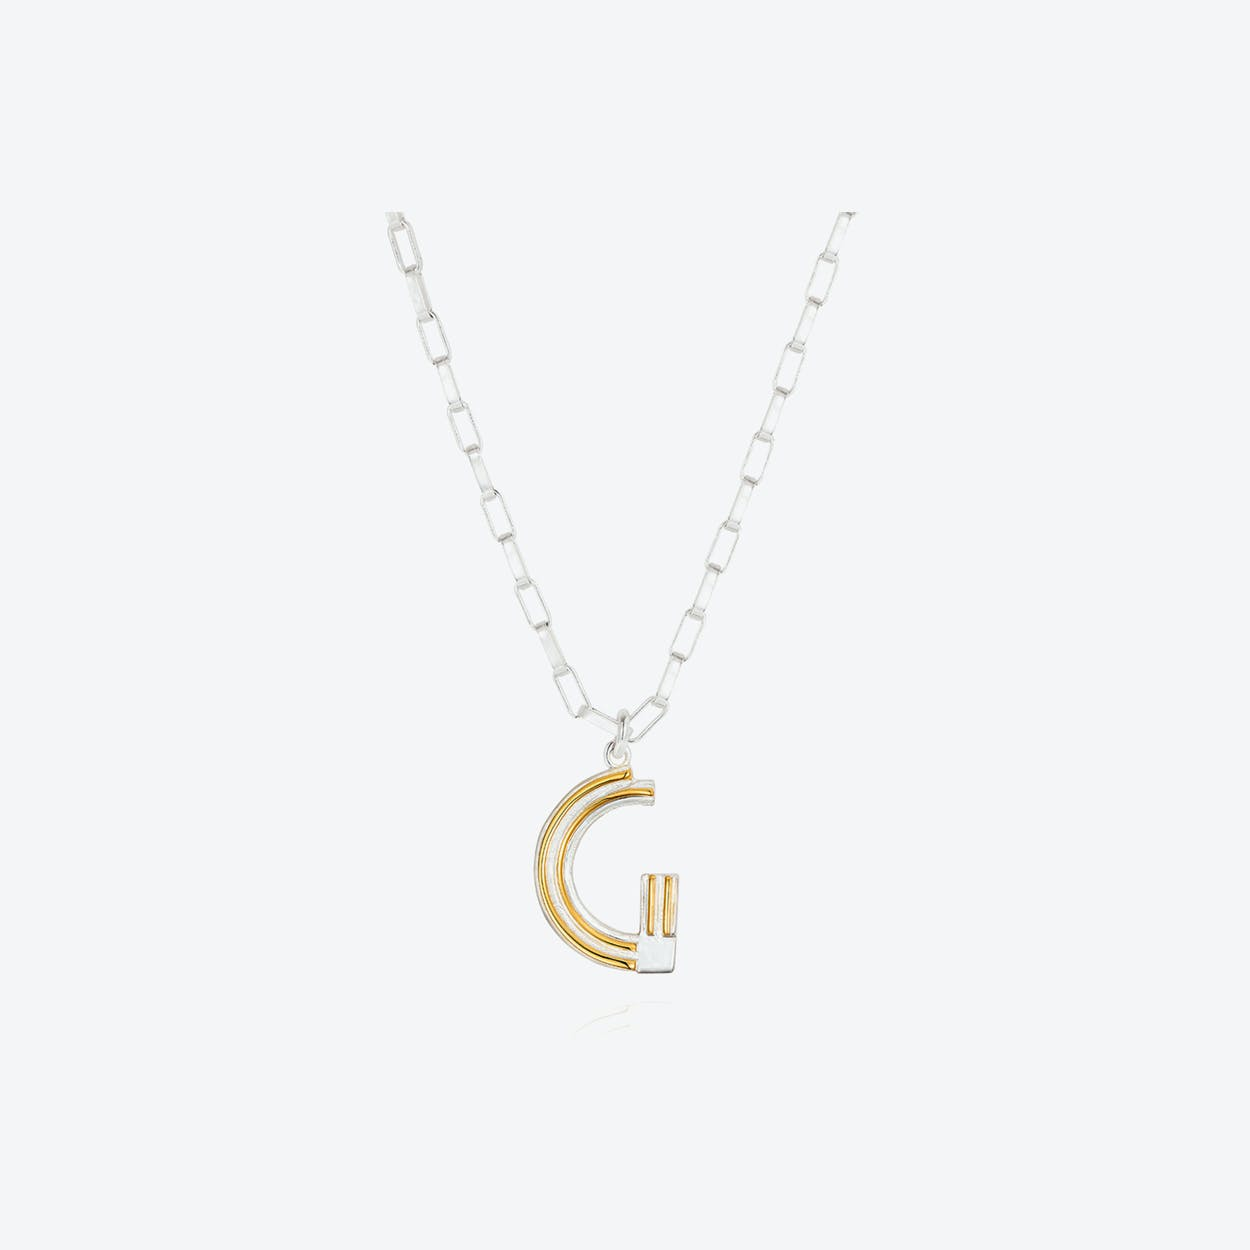 Saxony G Initial Necklace